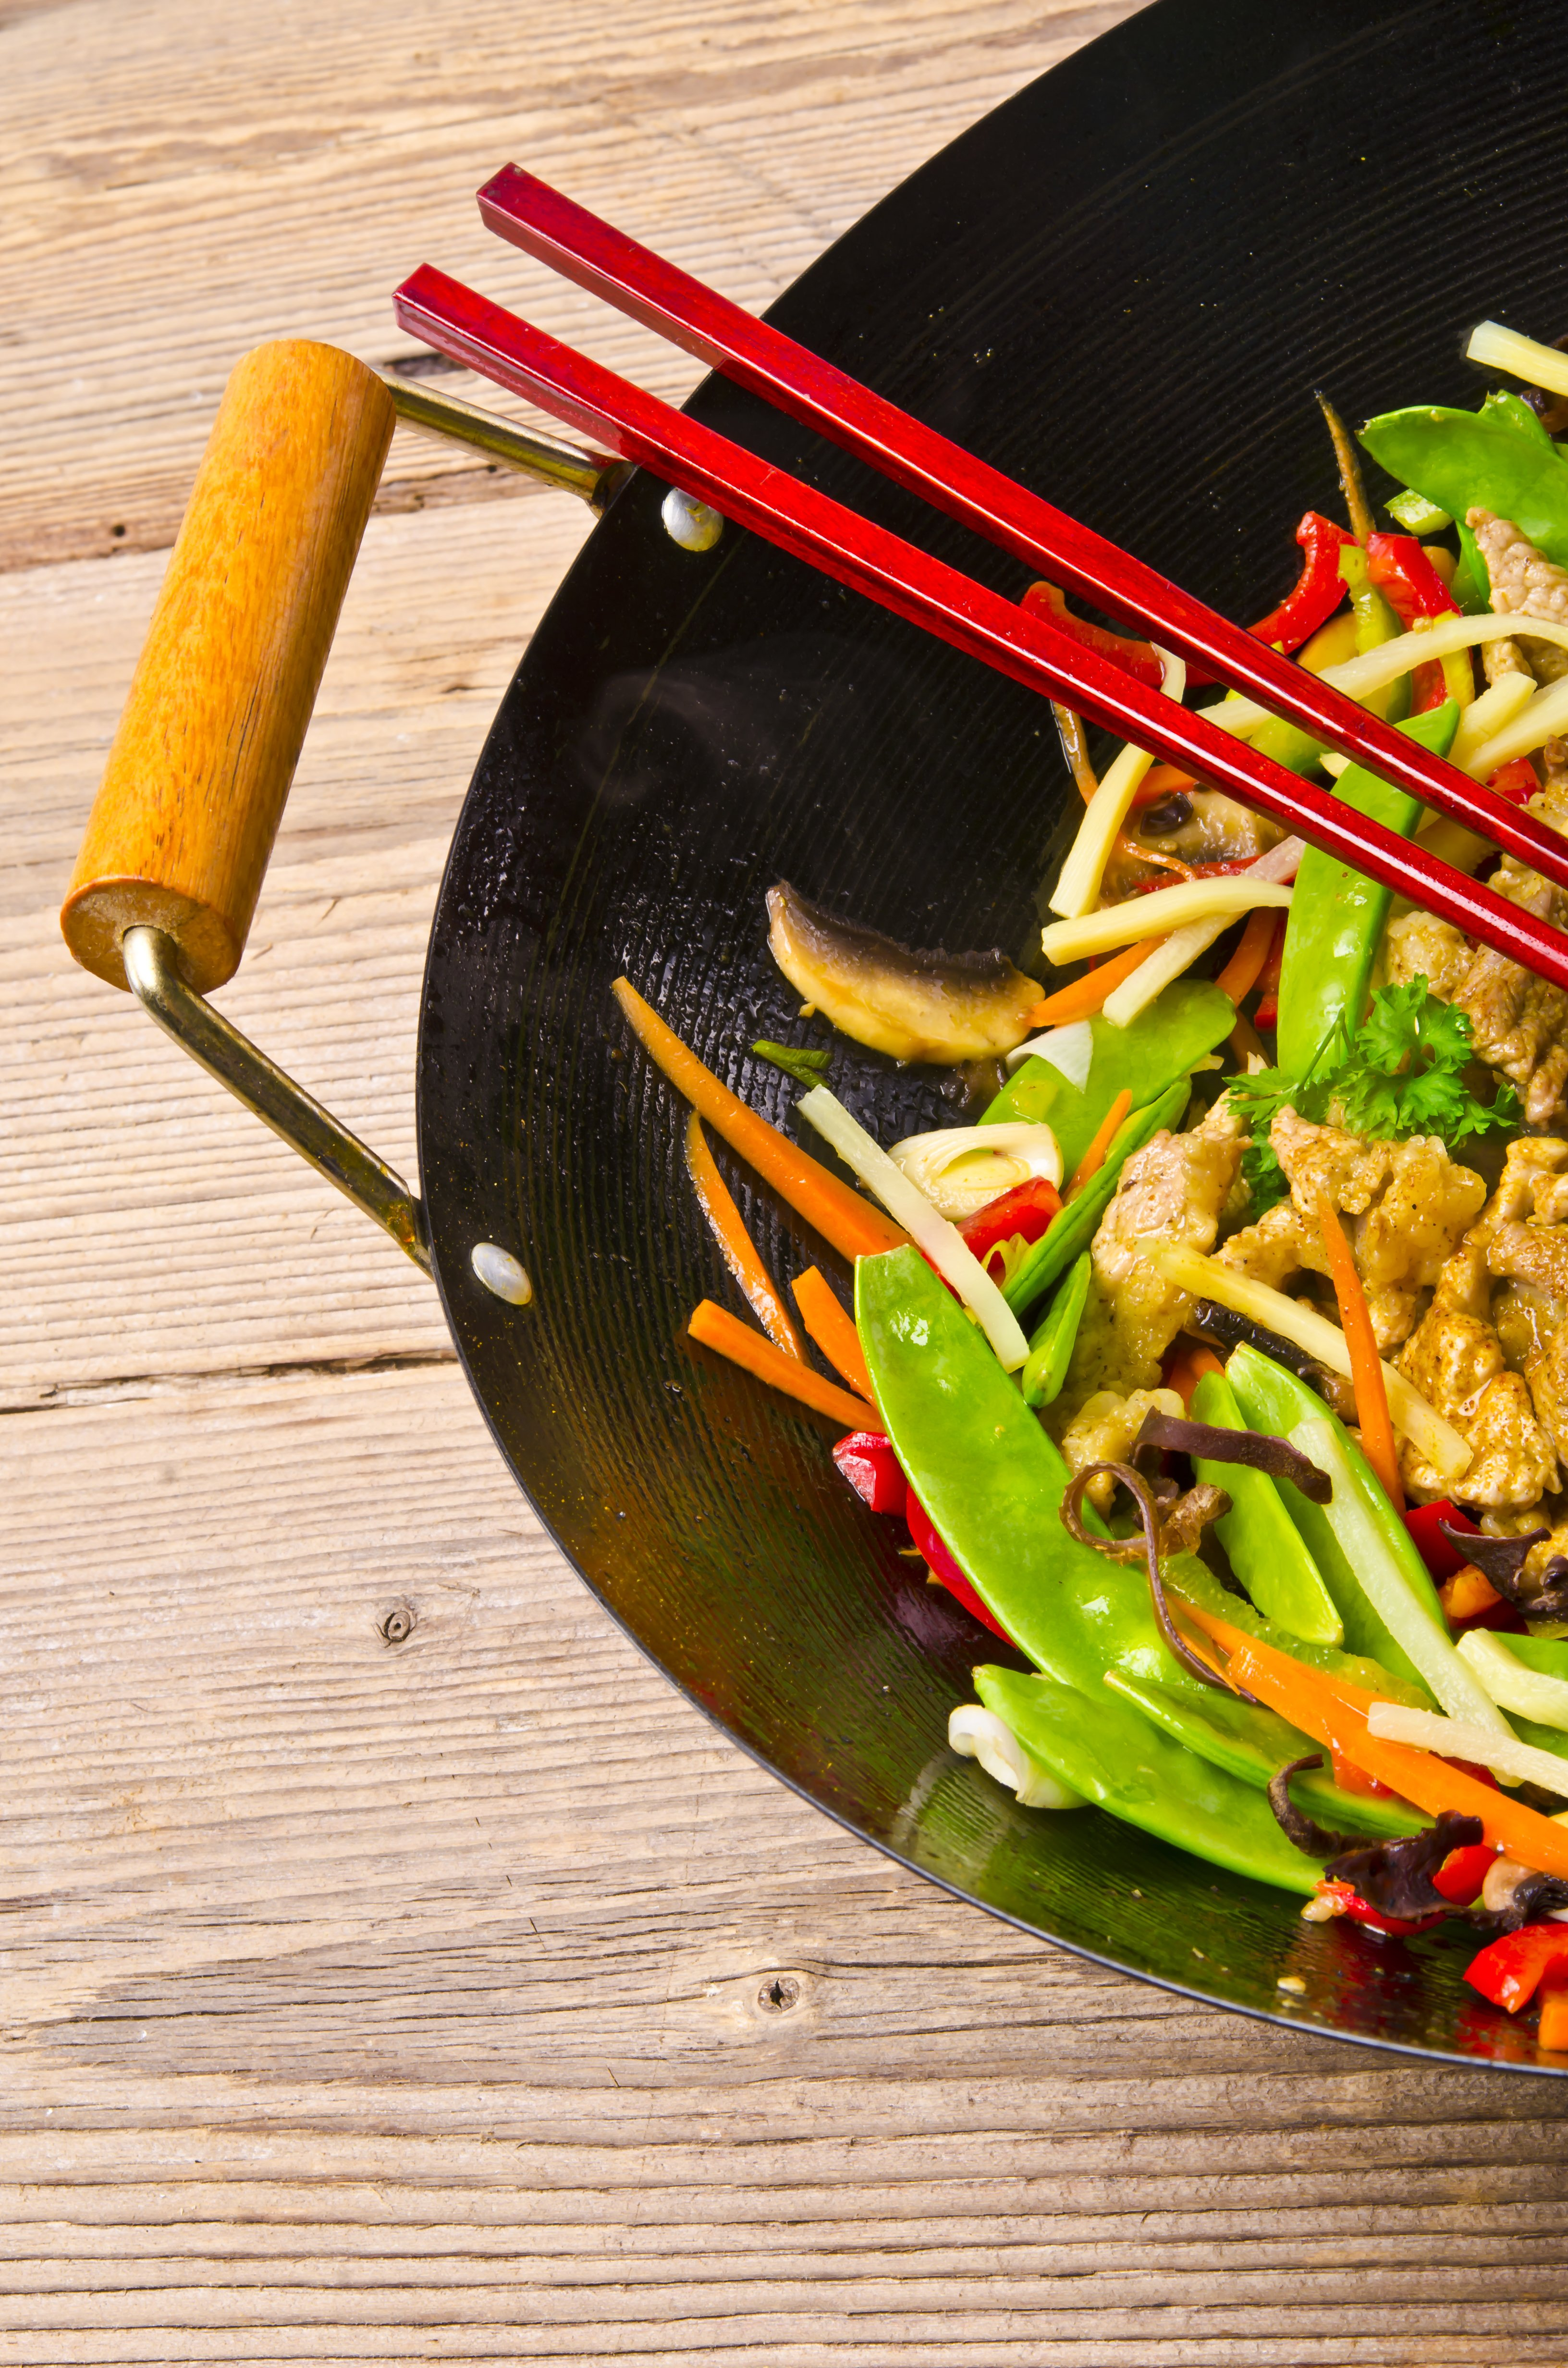 How To Buy and Season a New Wok | Kitchn